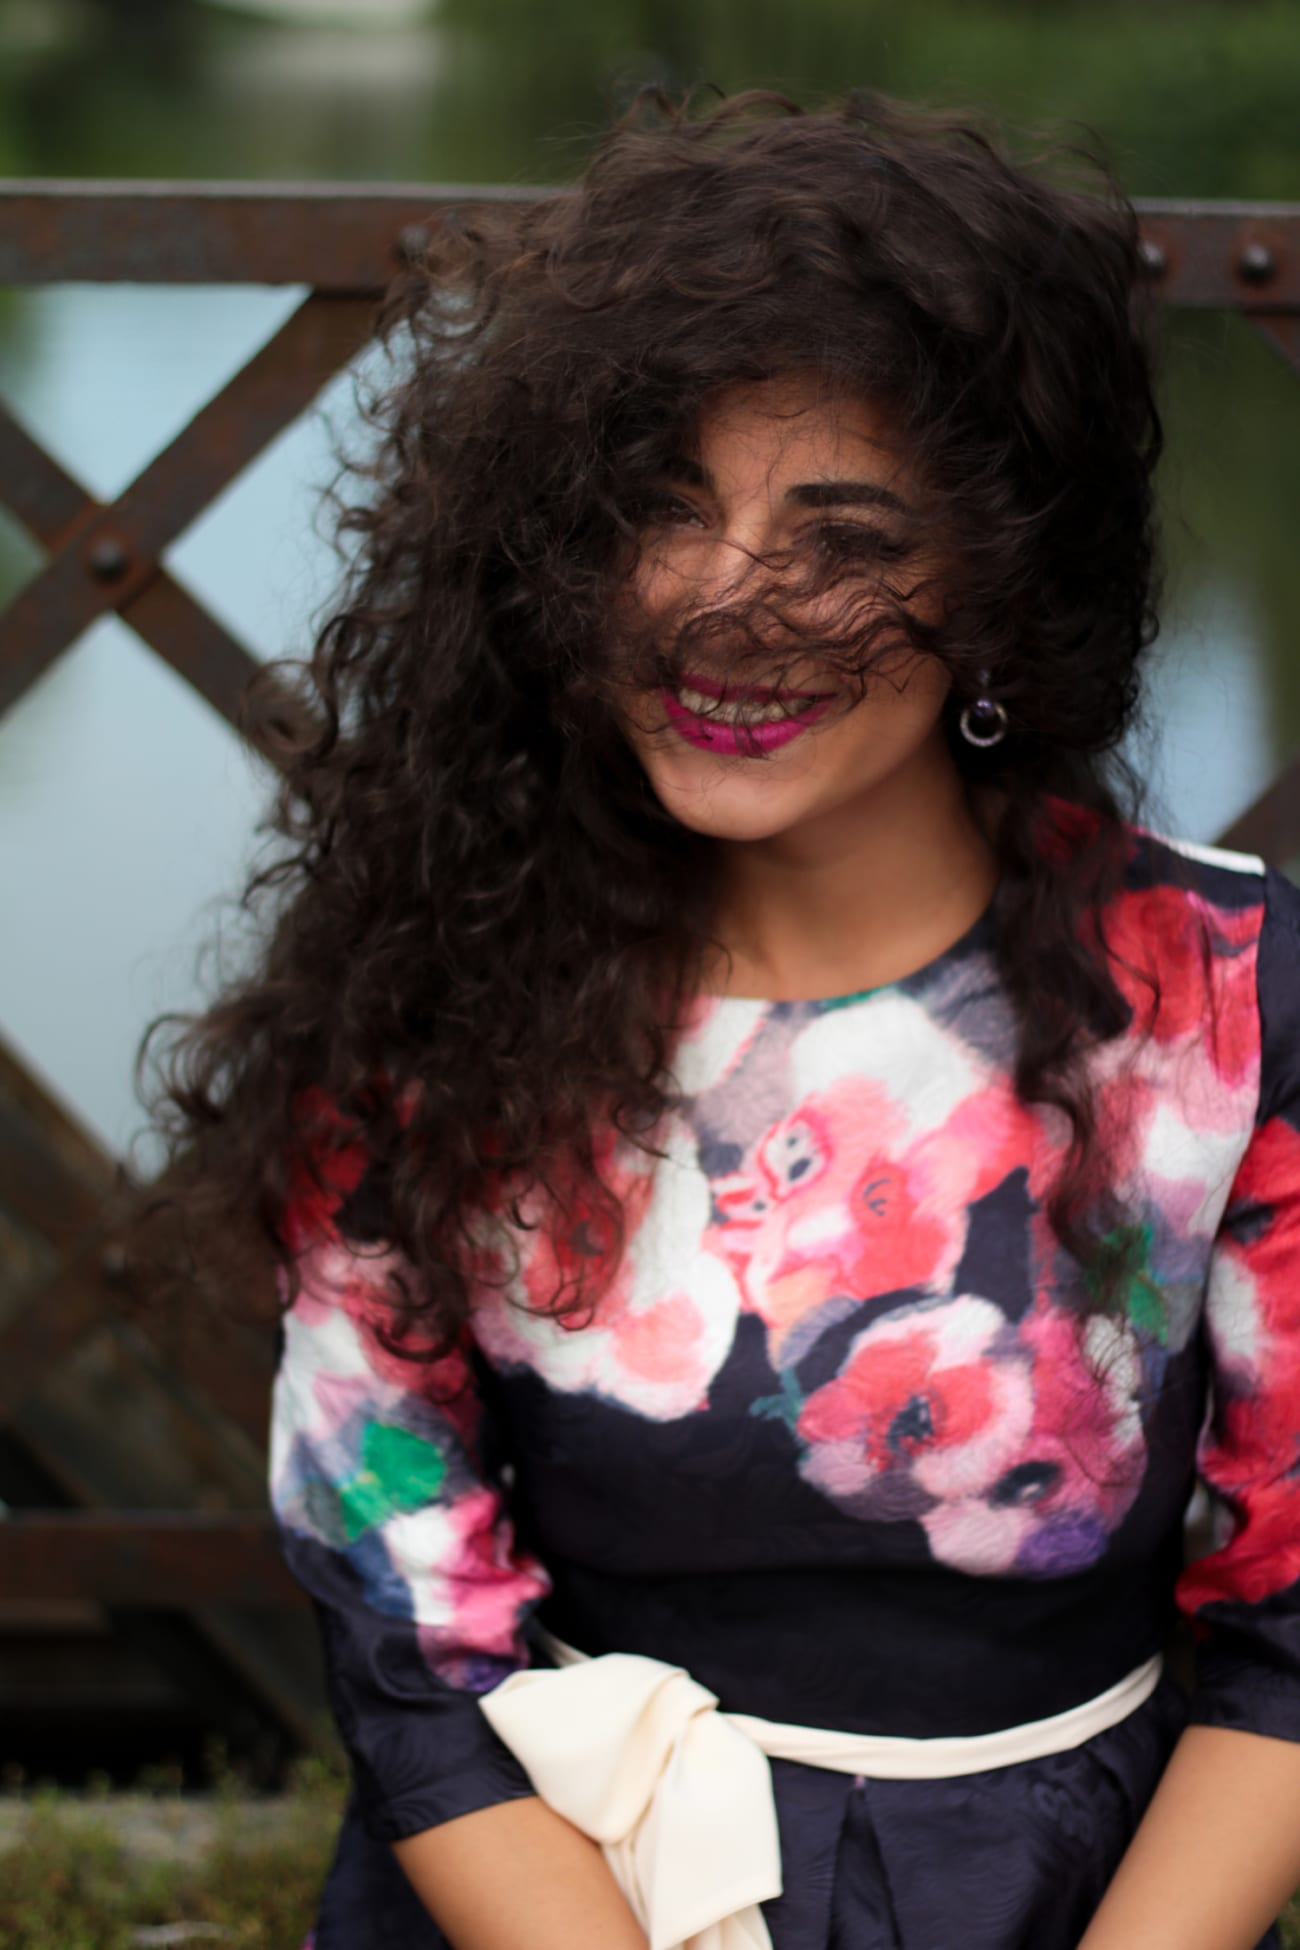 top-fashion-pareri-roxi-rose-timisoara-fashion-blogger-rochia-cu-flori-floral-dress-review-favorite-fashion-item-and-why-clothing-piece curly girl